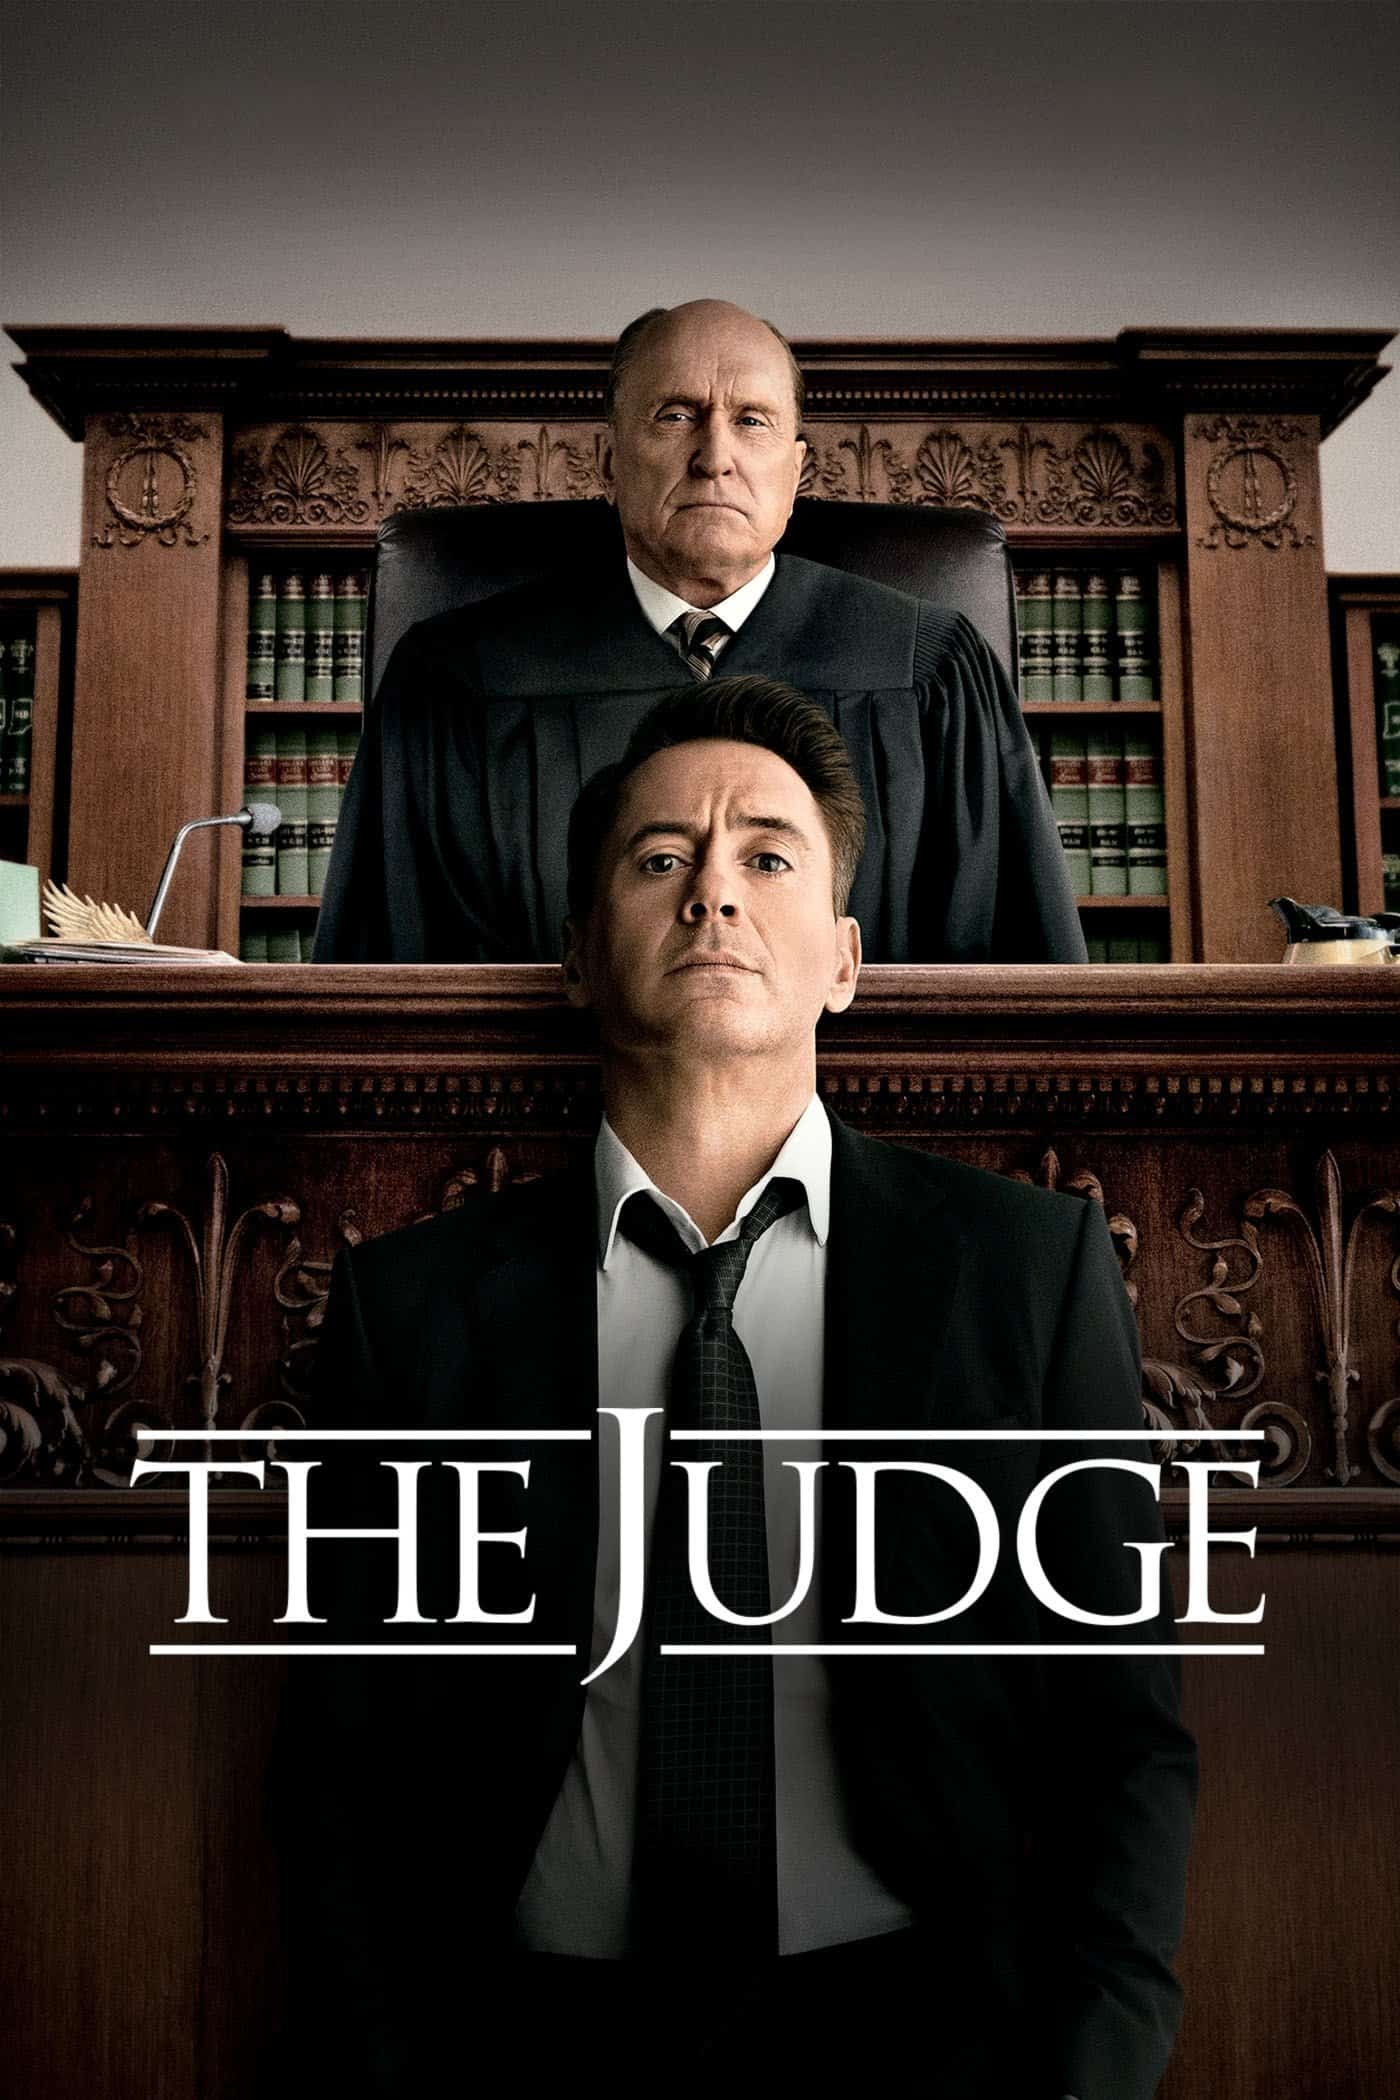 The Judge, 2014